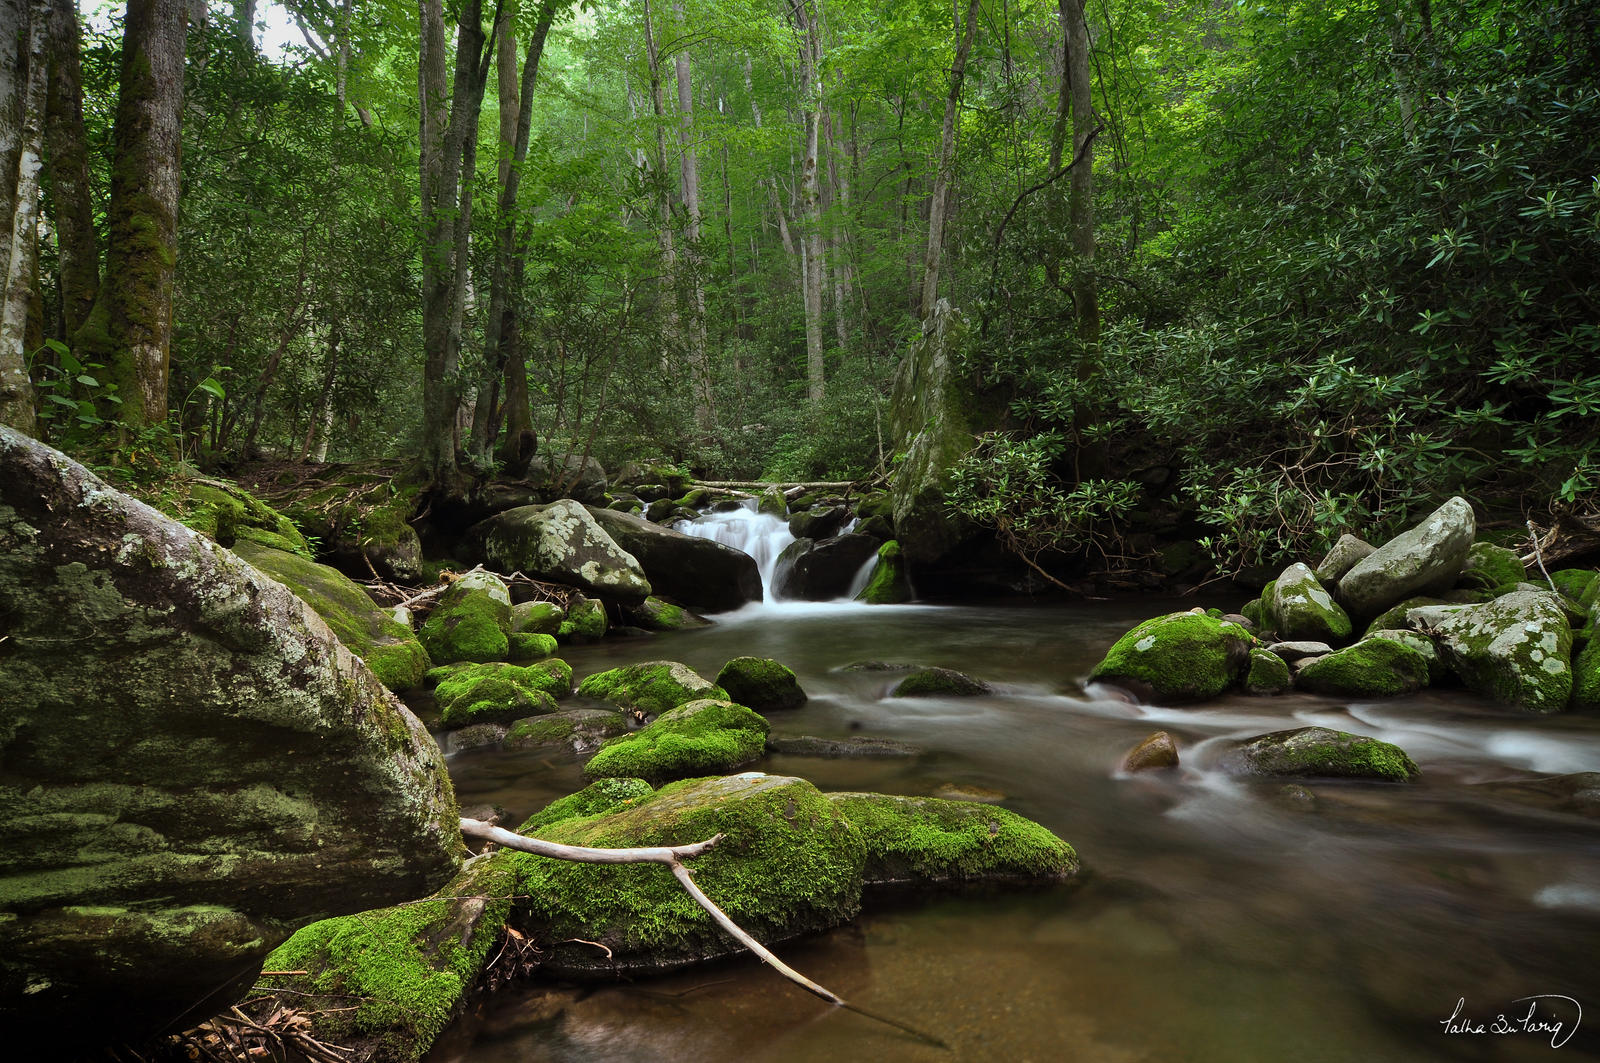 Roaring fork smoky mountains national park by tt83x on for Roaring fork smoky mountains